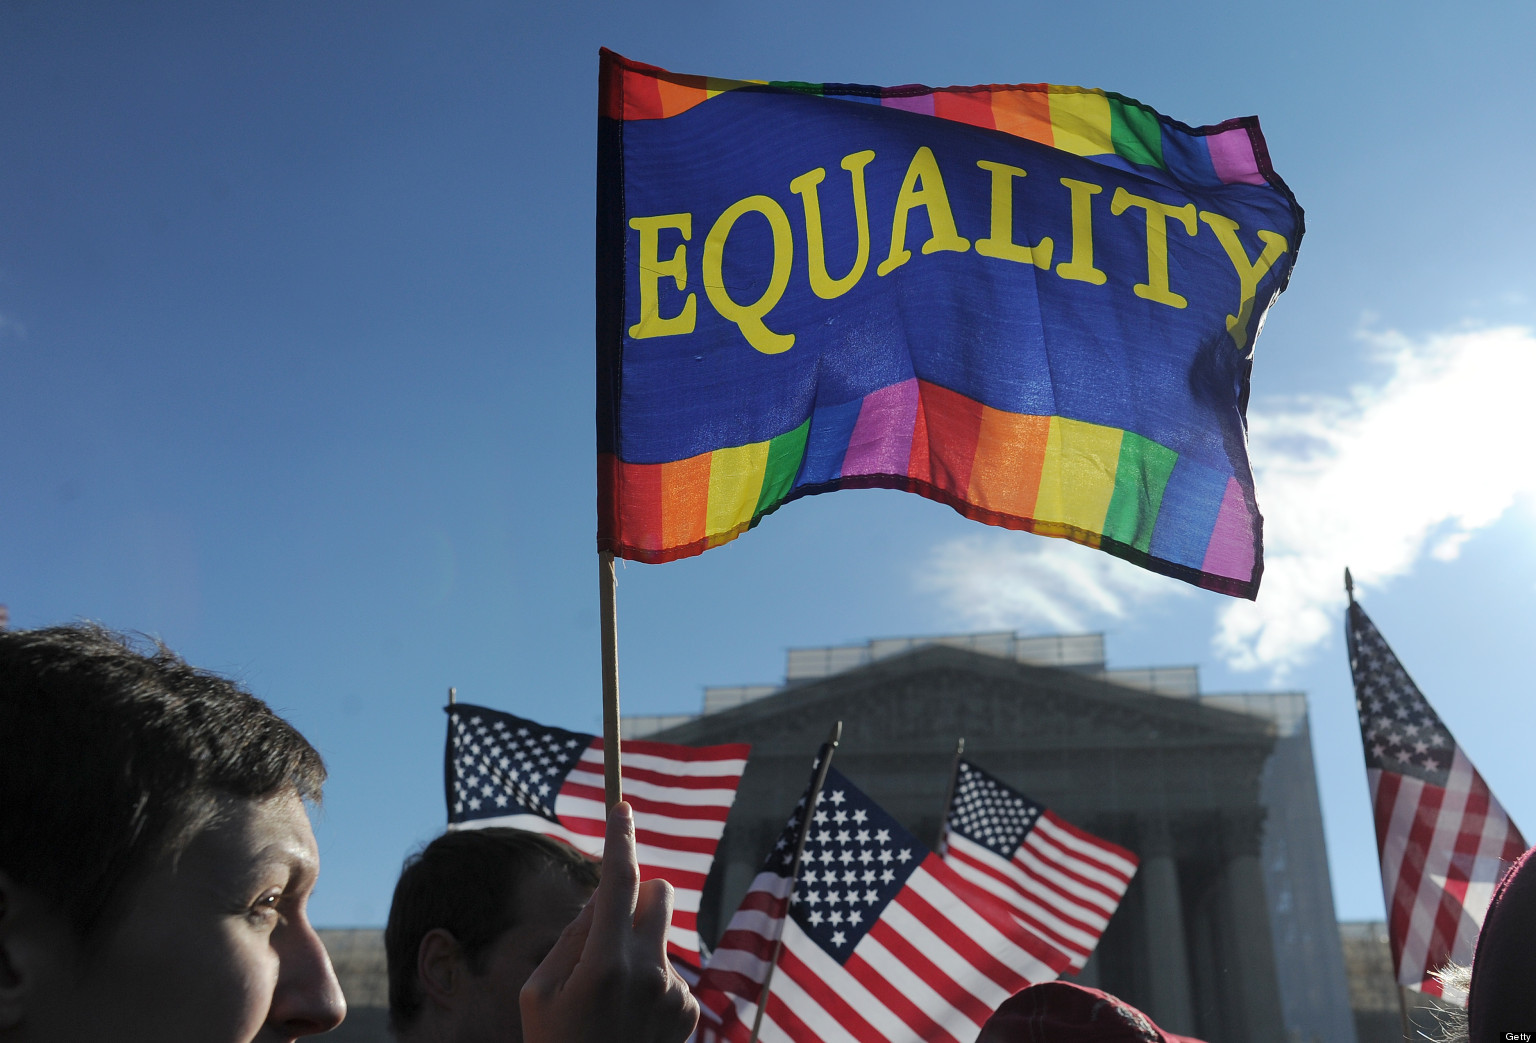 ON Congress to consider same-sex marriage bill during Hun-Kah Session